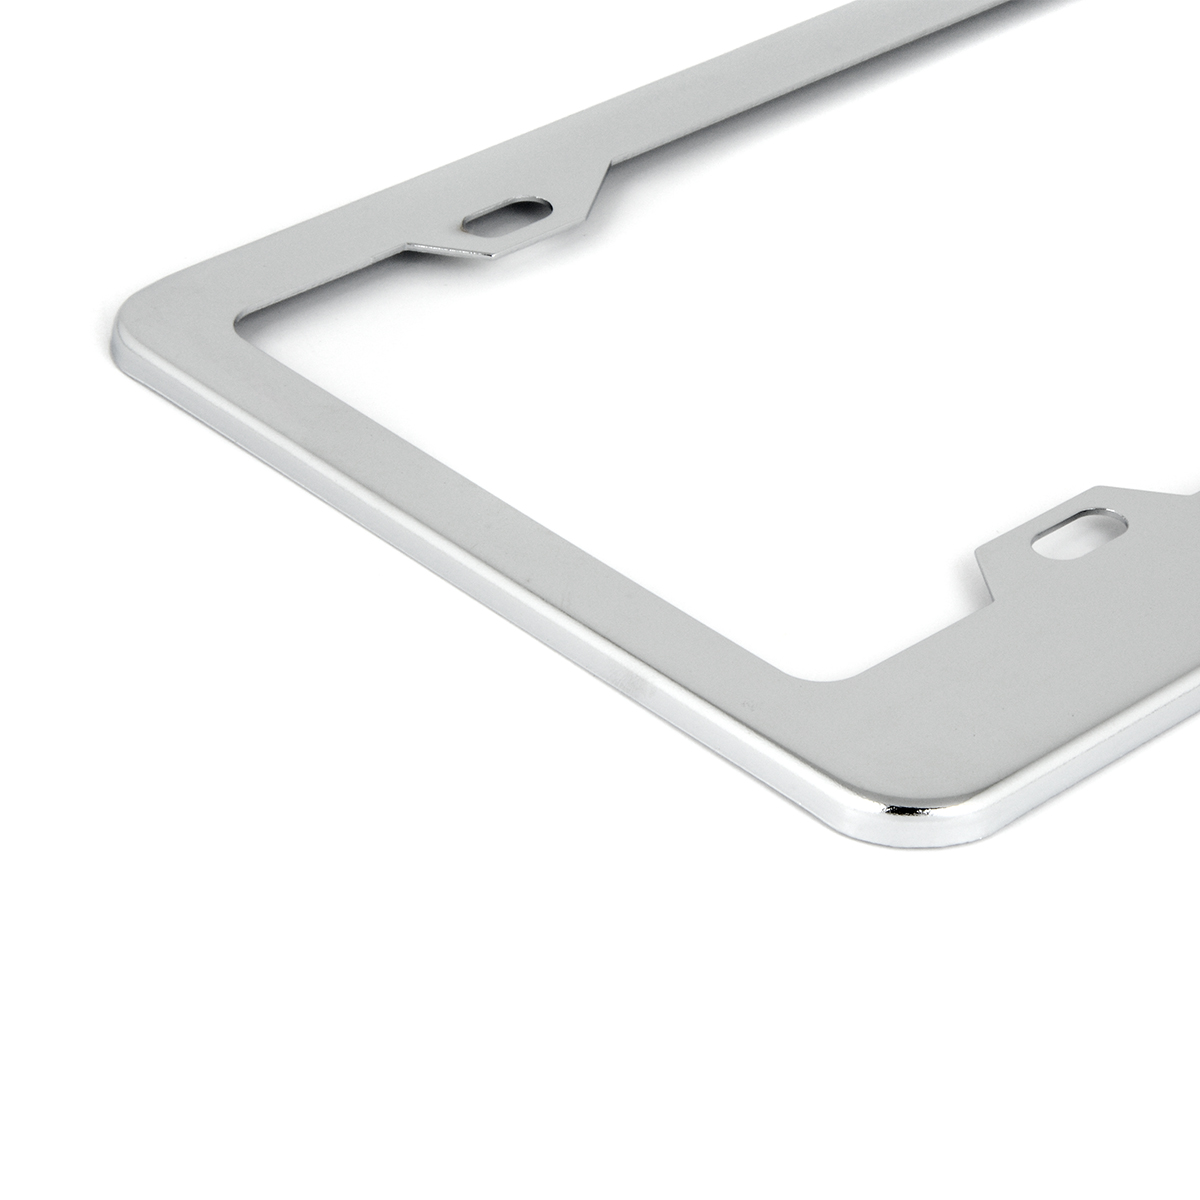 60050 Classic Chrome Plastic Steel 4-Hole License Plate Frames - Close Up View